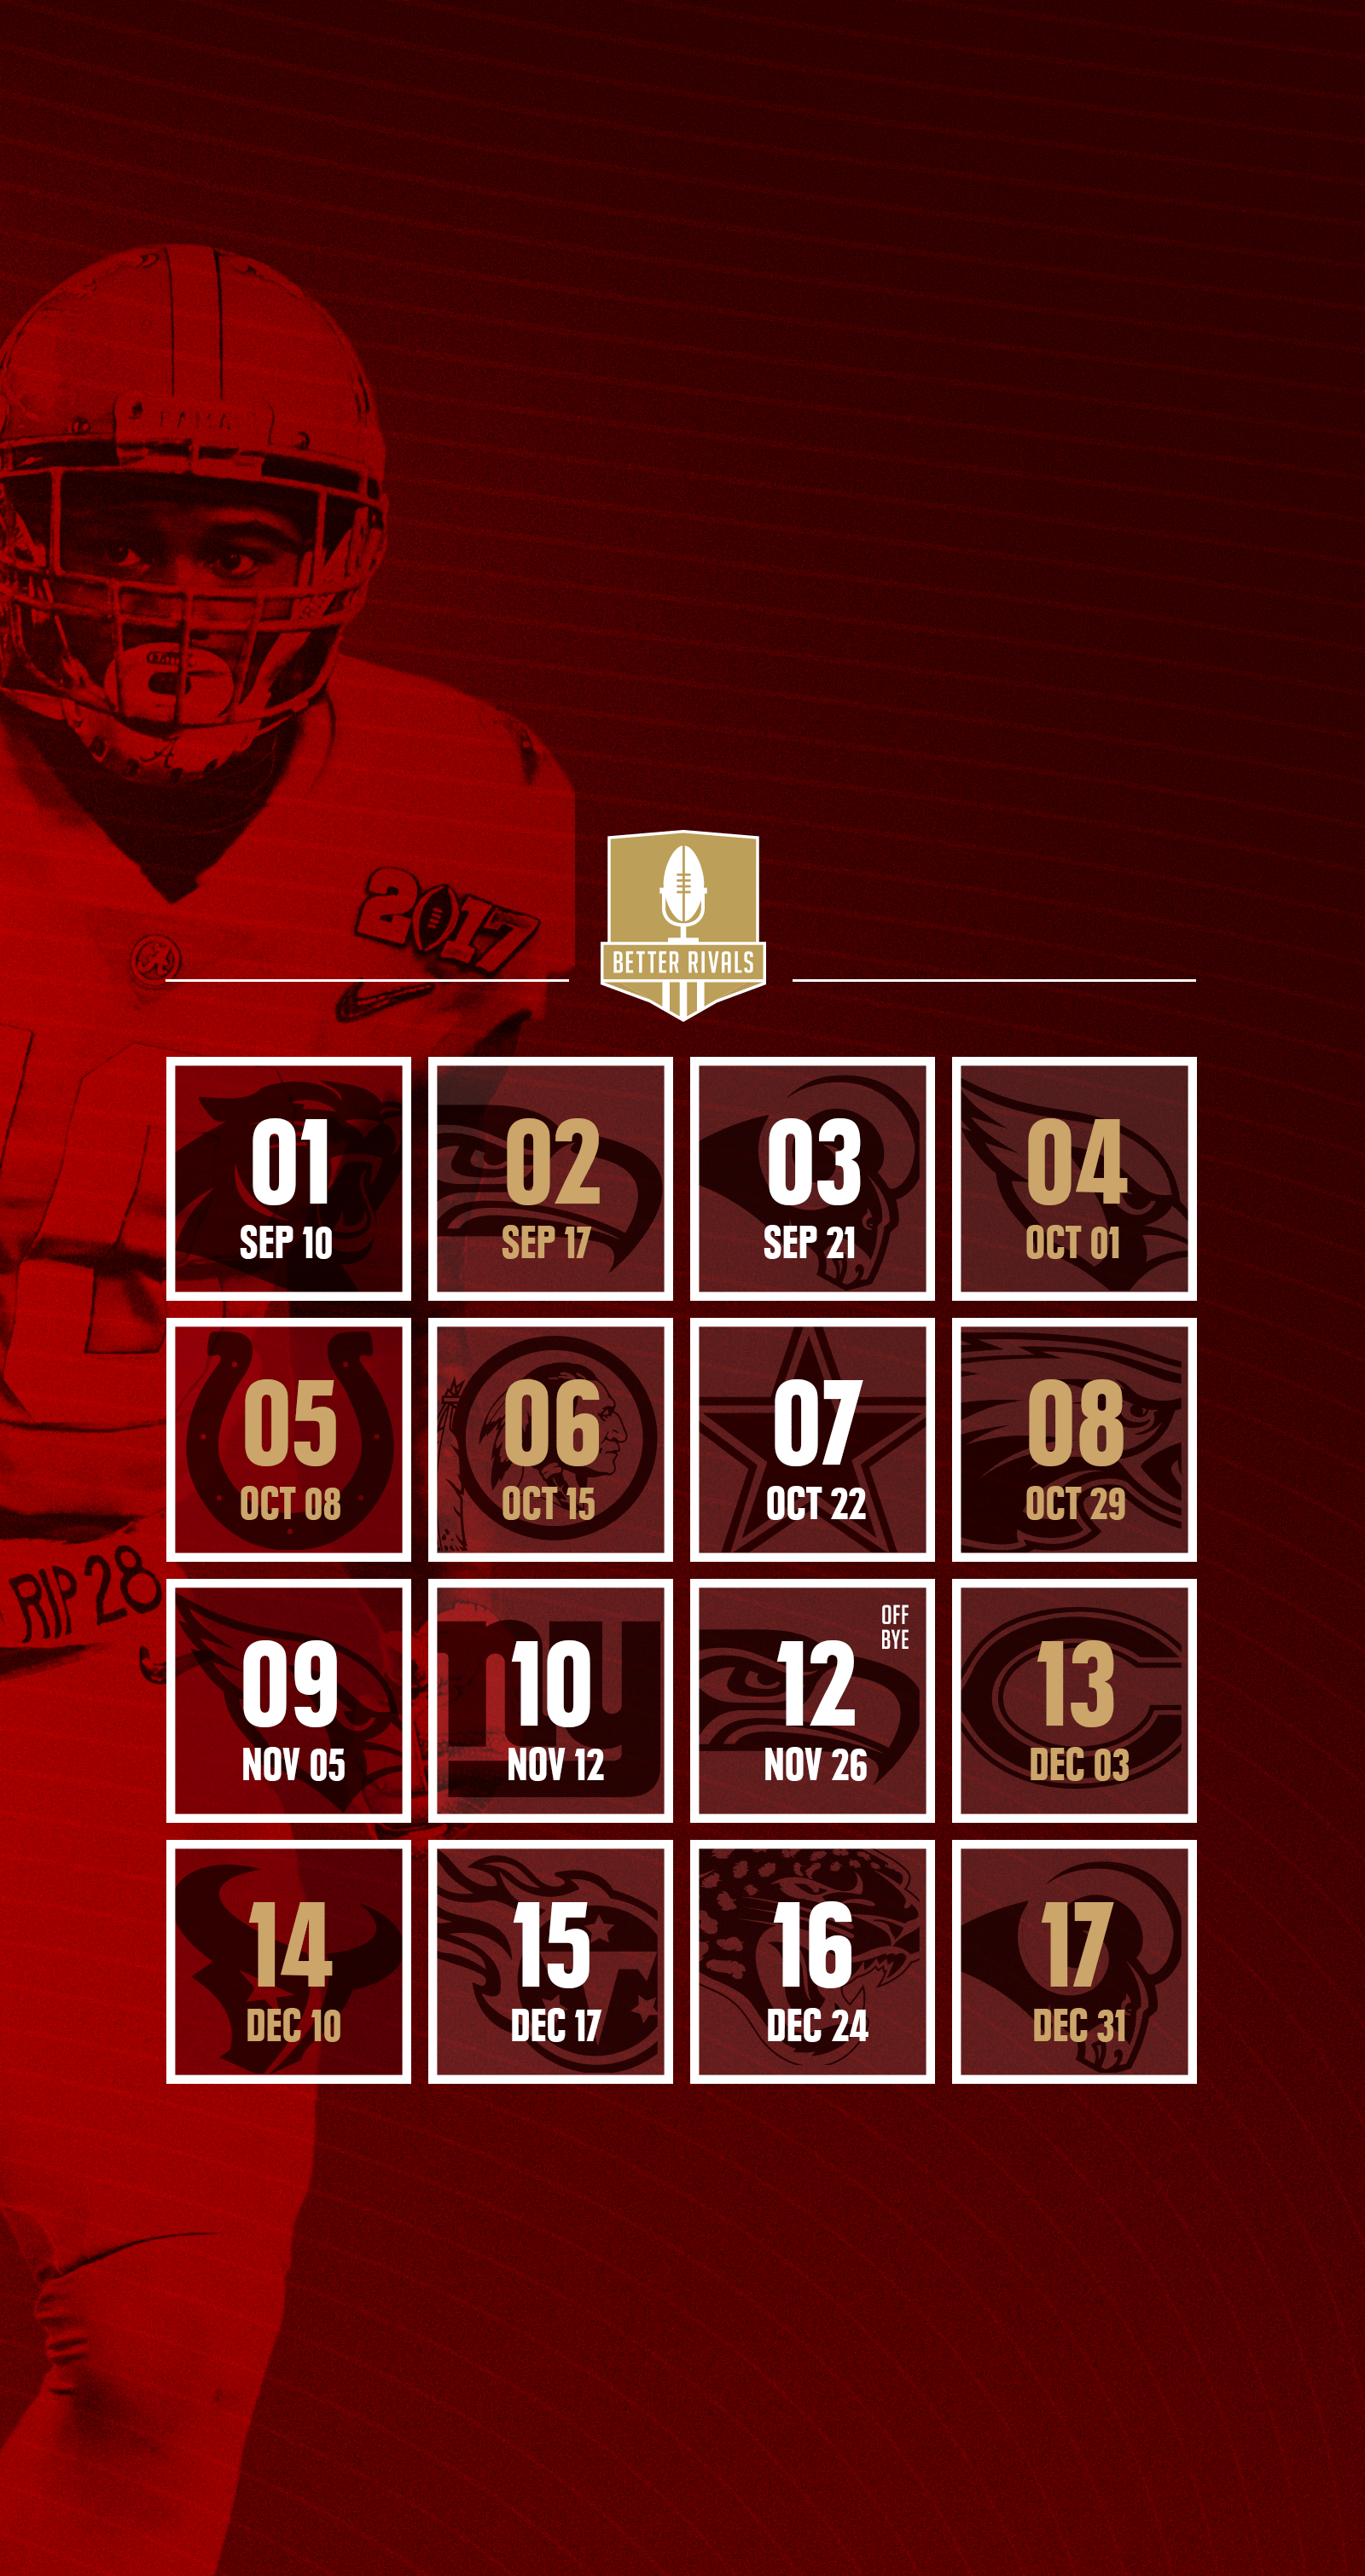 49ers 2017 schedule wallpapers for iPhone, Android, desktop ...